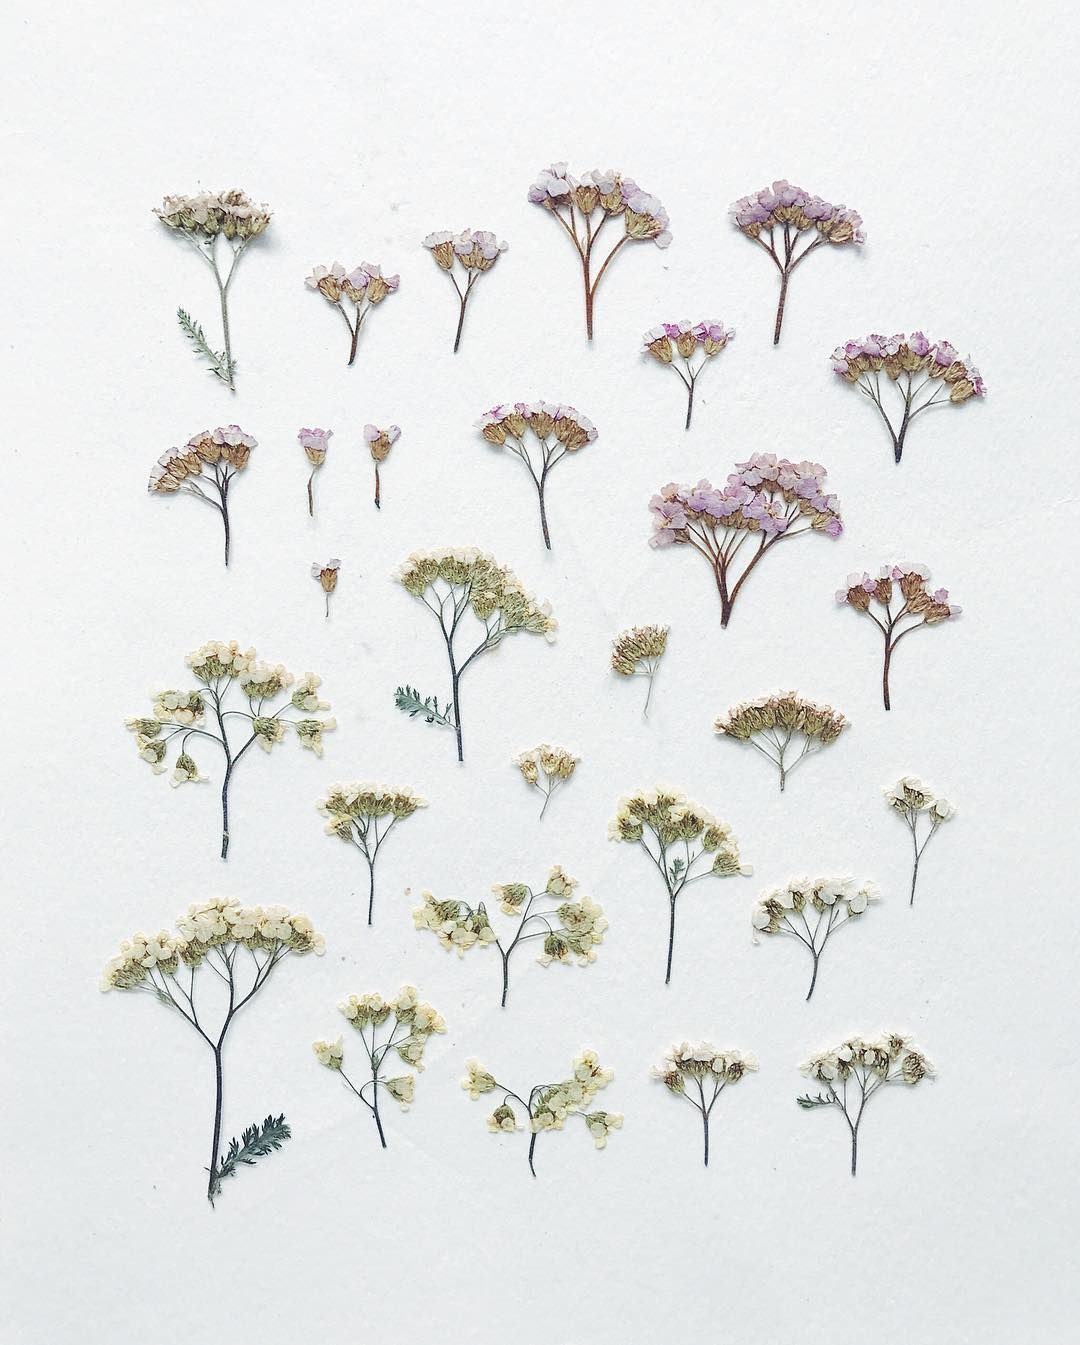 Some Pressed Achillea Thinking Of You Achilleaflowers Pressed Flowers Diy Vintage Art Prints Pressed Flowers